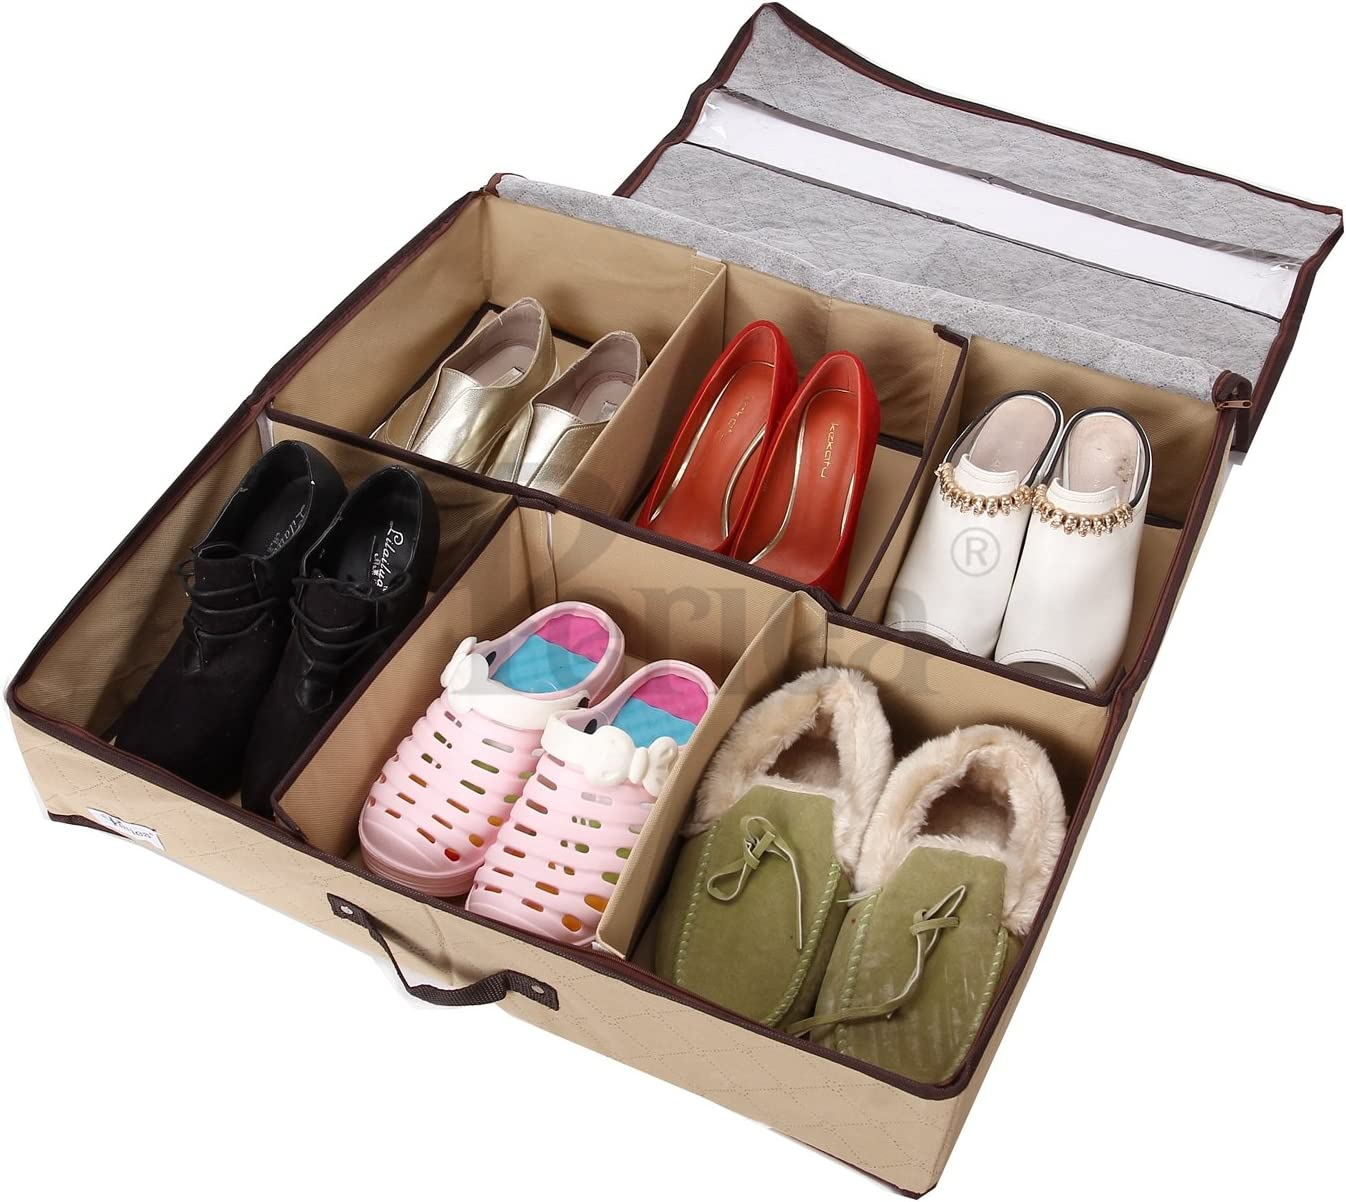 Periea 'Sami' Shoe Organiser - Foldable Shoe Storage Bag/Box for Tidying & Organising Shoes, Trainers, Heels & Boots – Anti-odour & Anti-mould Fabric (Beige)